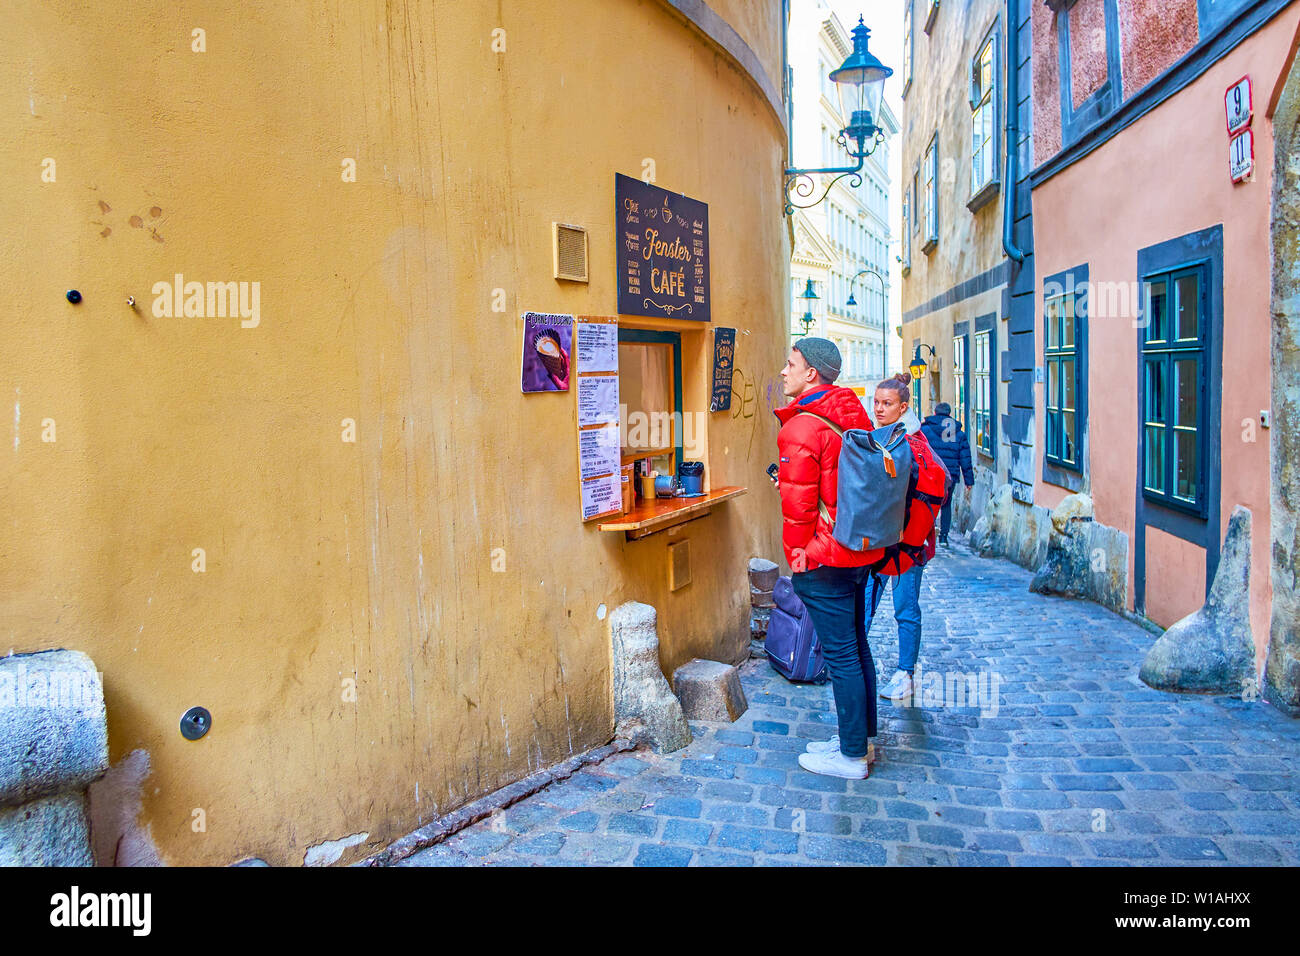 VIENNA, AUSTRIA - FEBRUARY 18, 2019: The tourists buy traditional coffee in small stylish Fenster cafe - tiny kiosk in historic house wall, hidden in - Stock Image